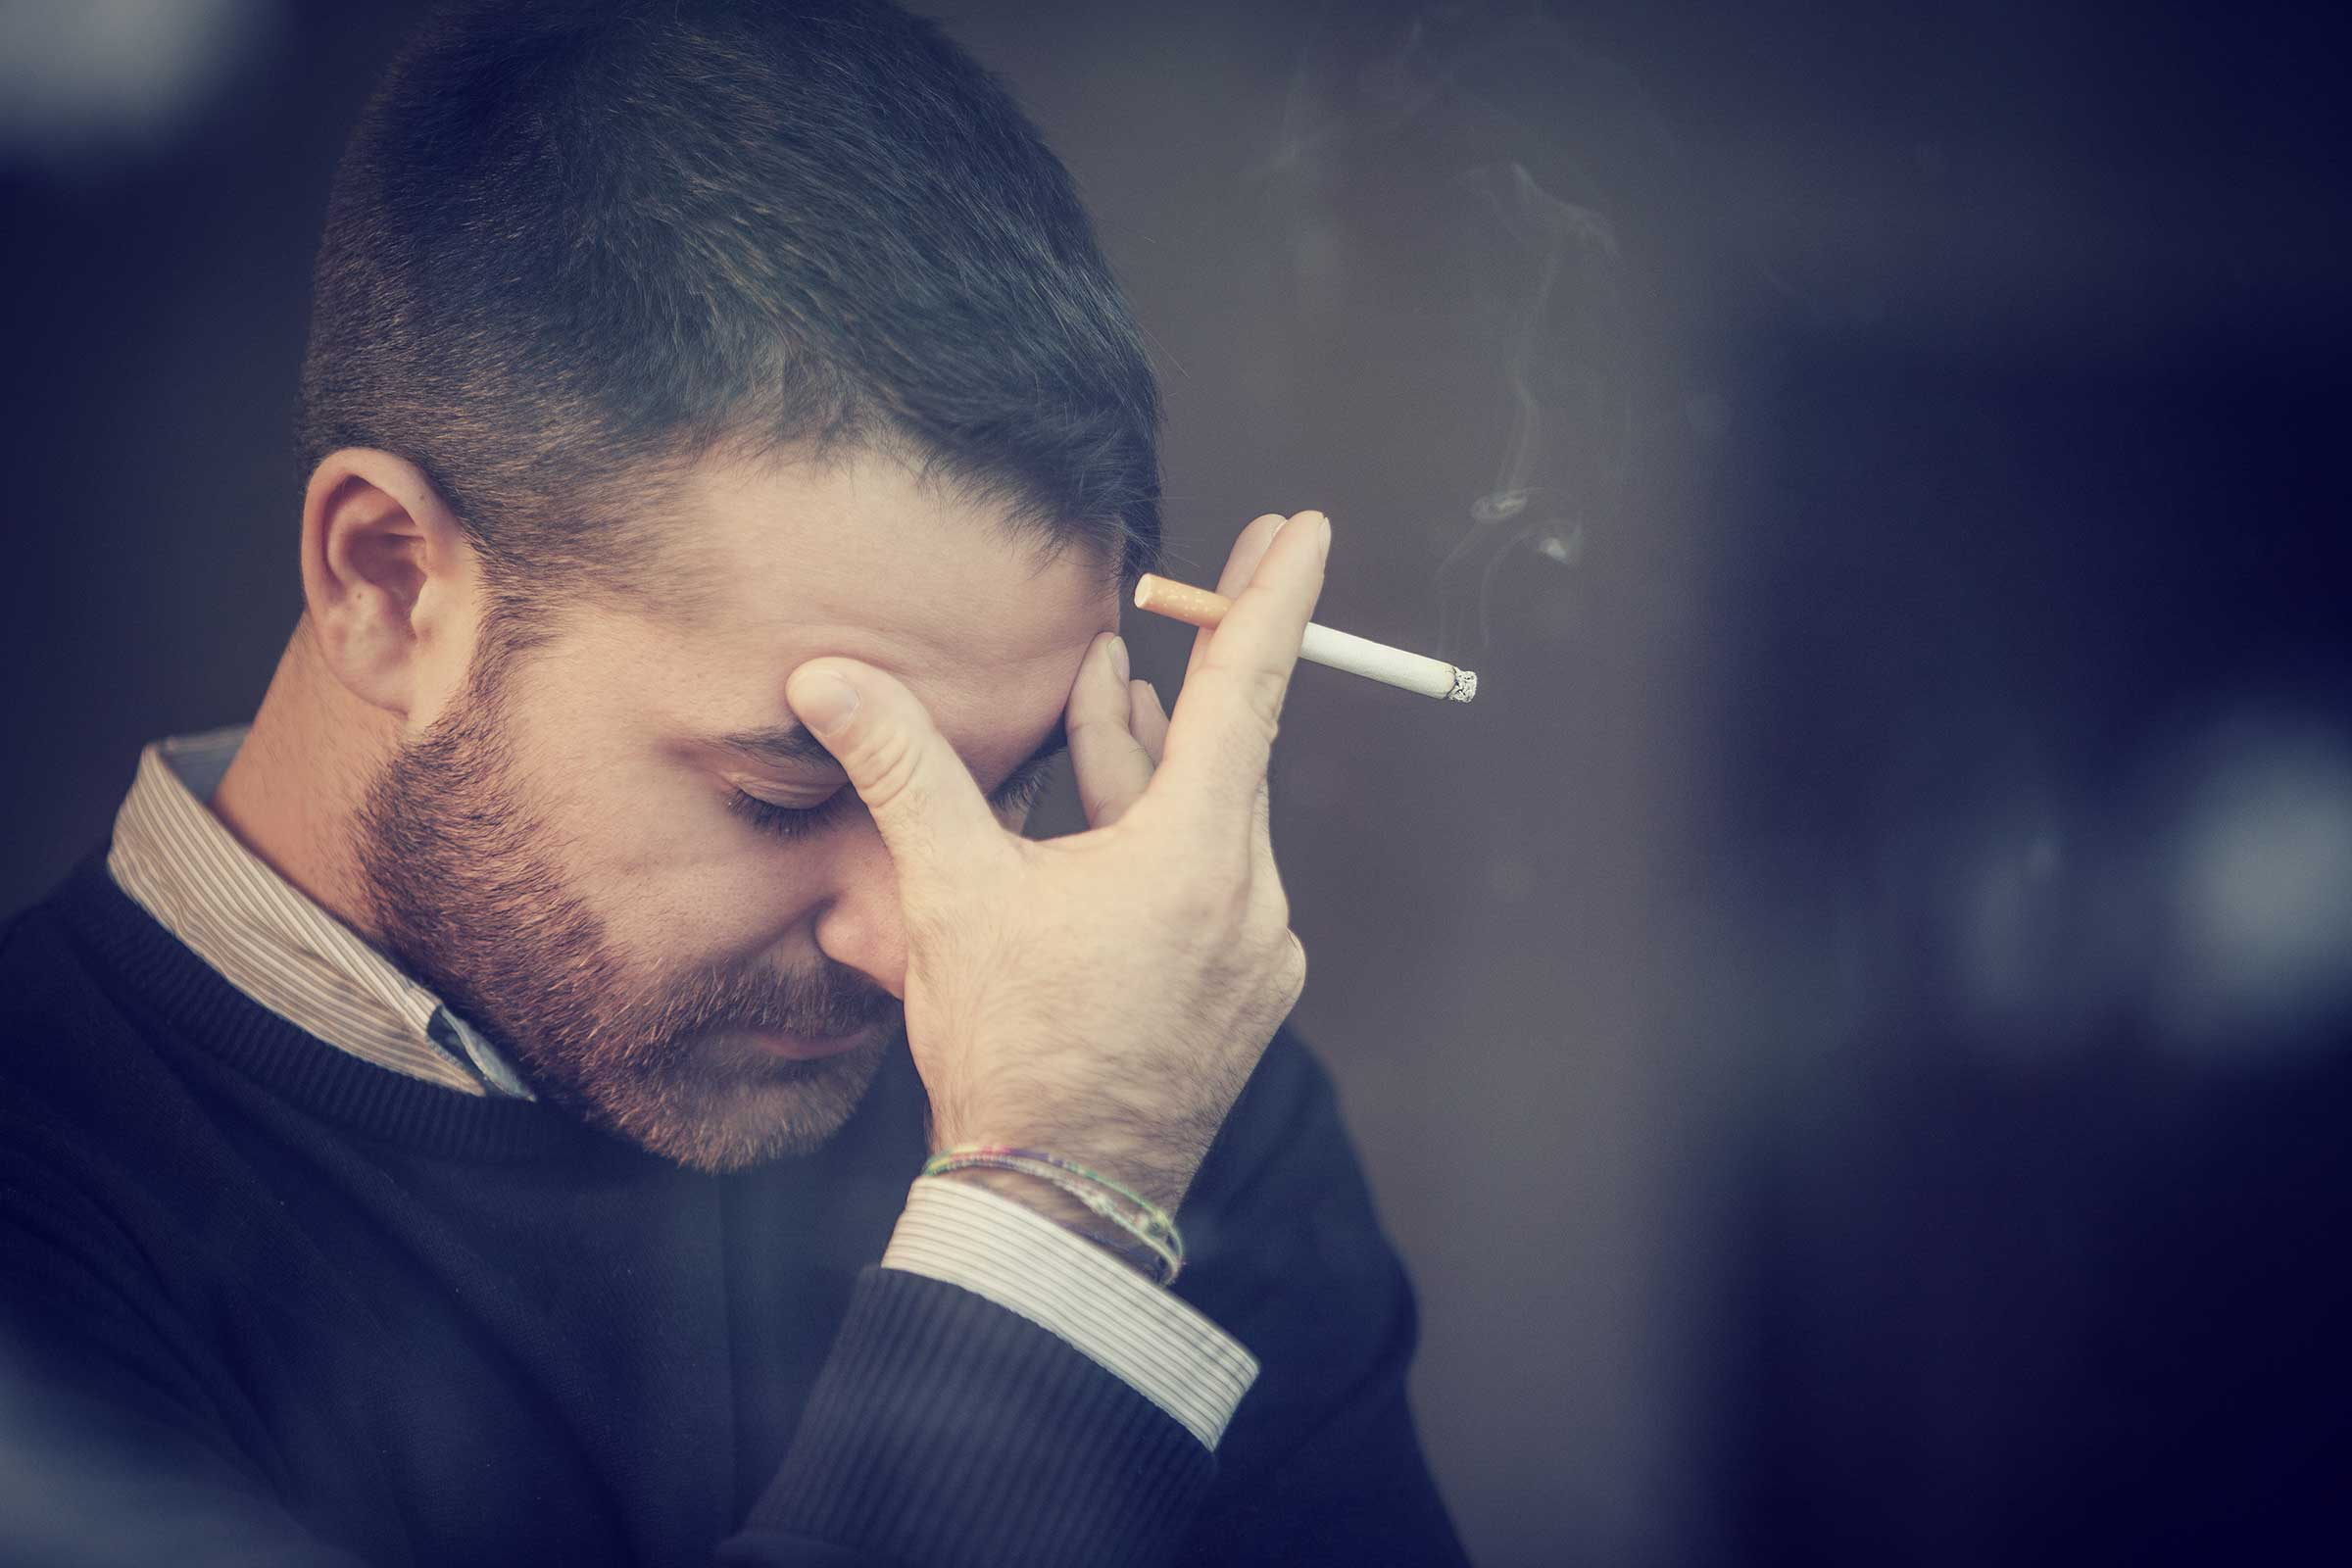 Smoking causes increased sensitivity to pain